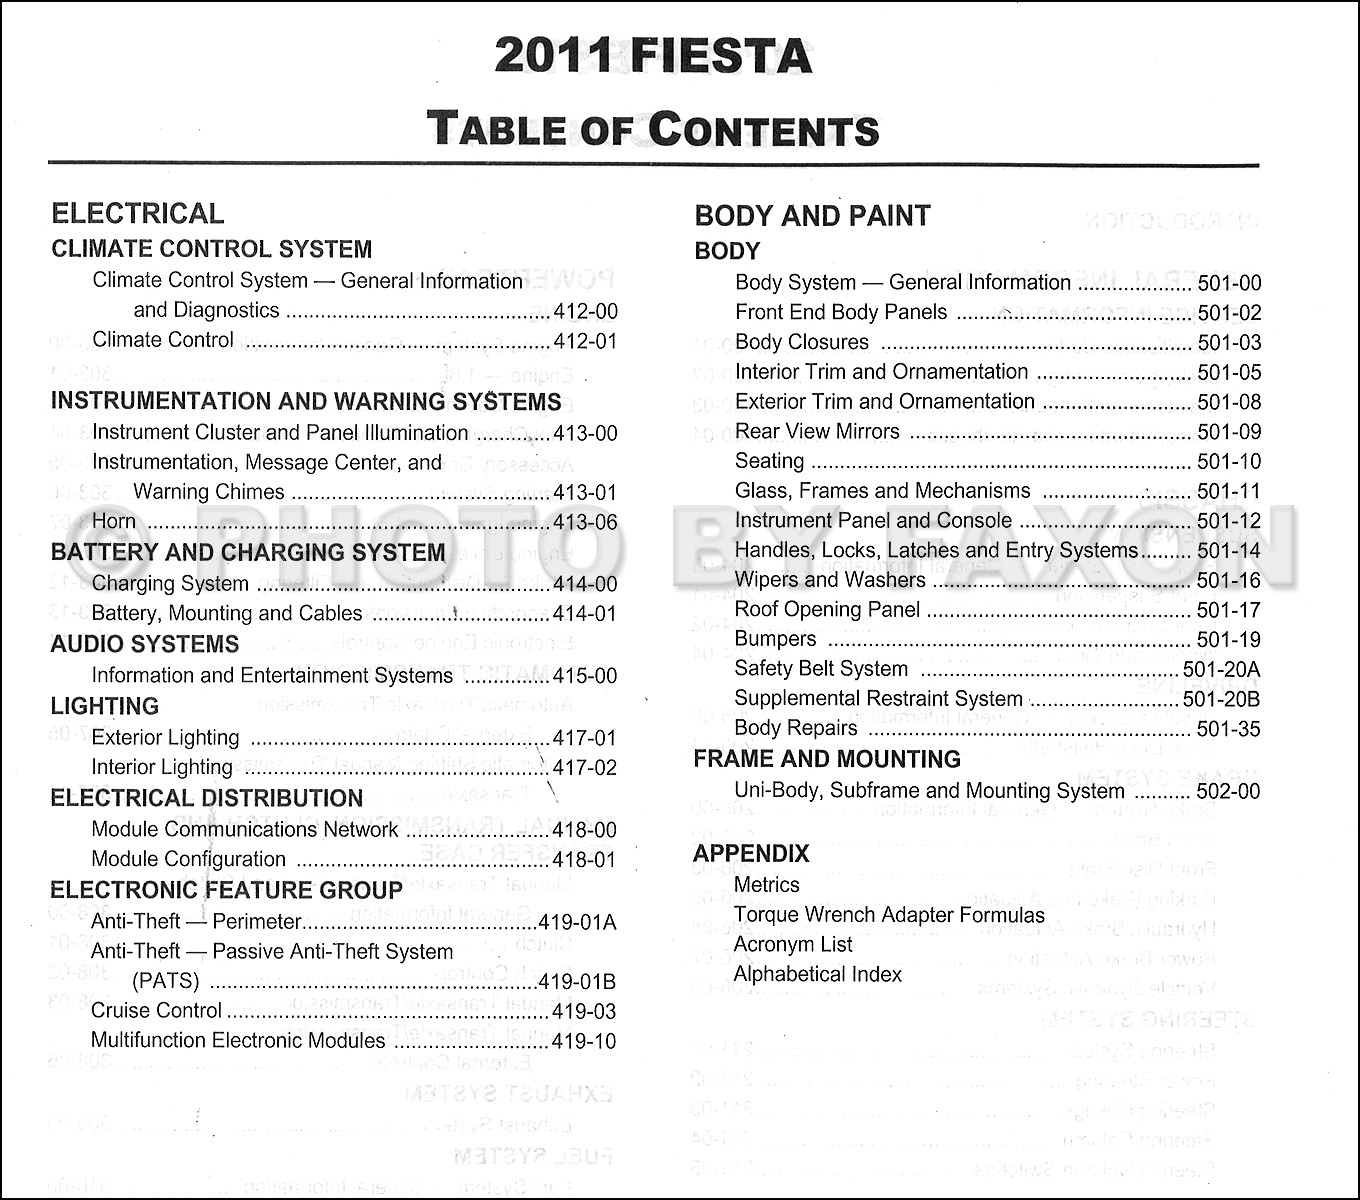 Ford Fiesta Wiring Diagram Page 4 And Schematics 1999 Festiva Fuse Box 2011 Repair Shop Manual Original Rh Faxonautoliterature Com